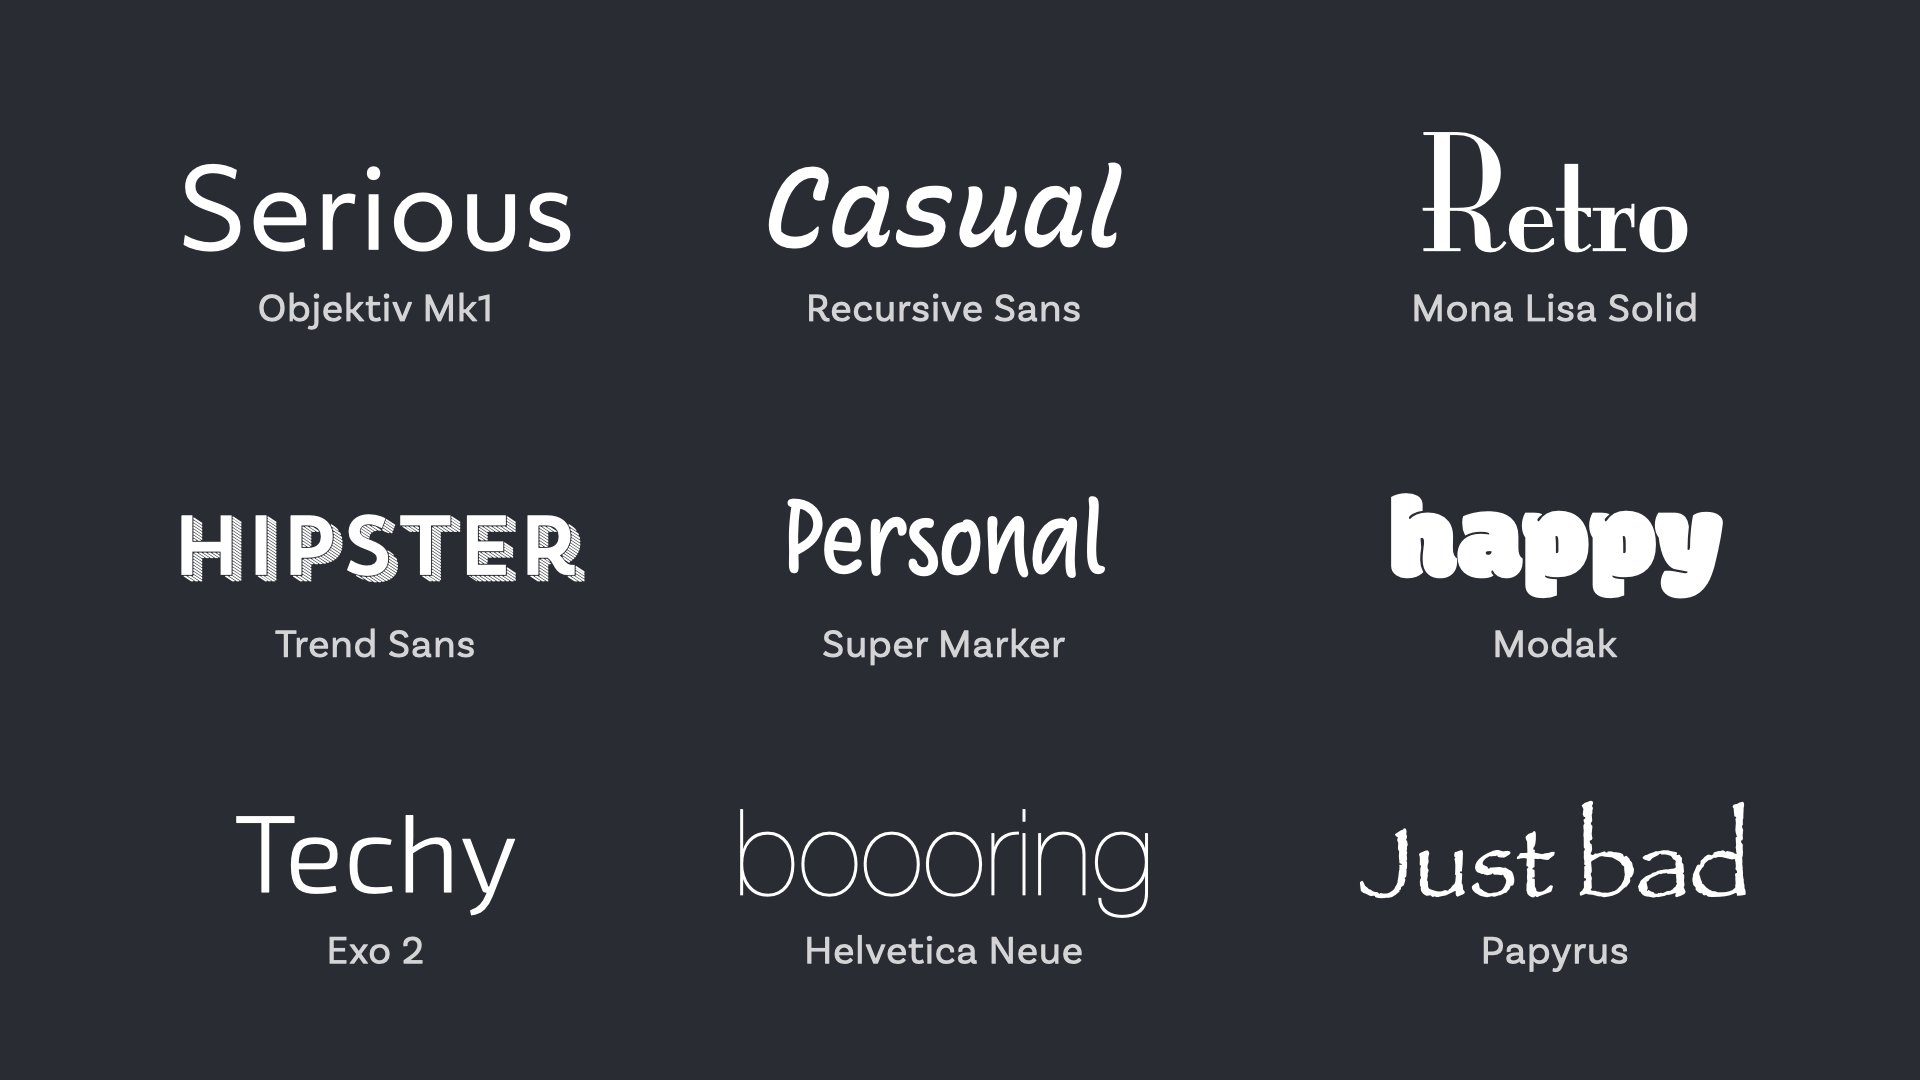 Different fonts that convey a serious, casual or retro feeling.